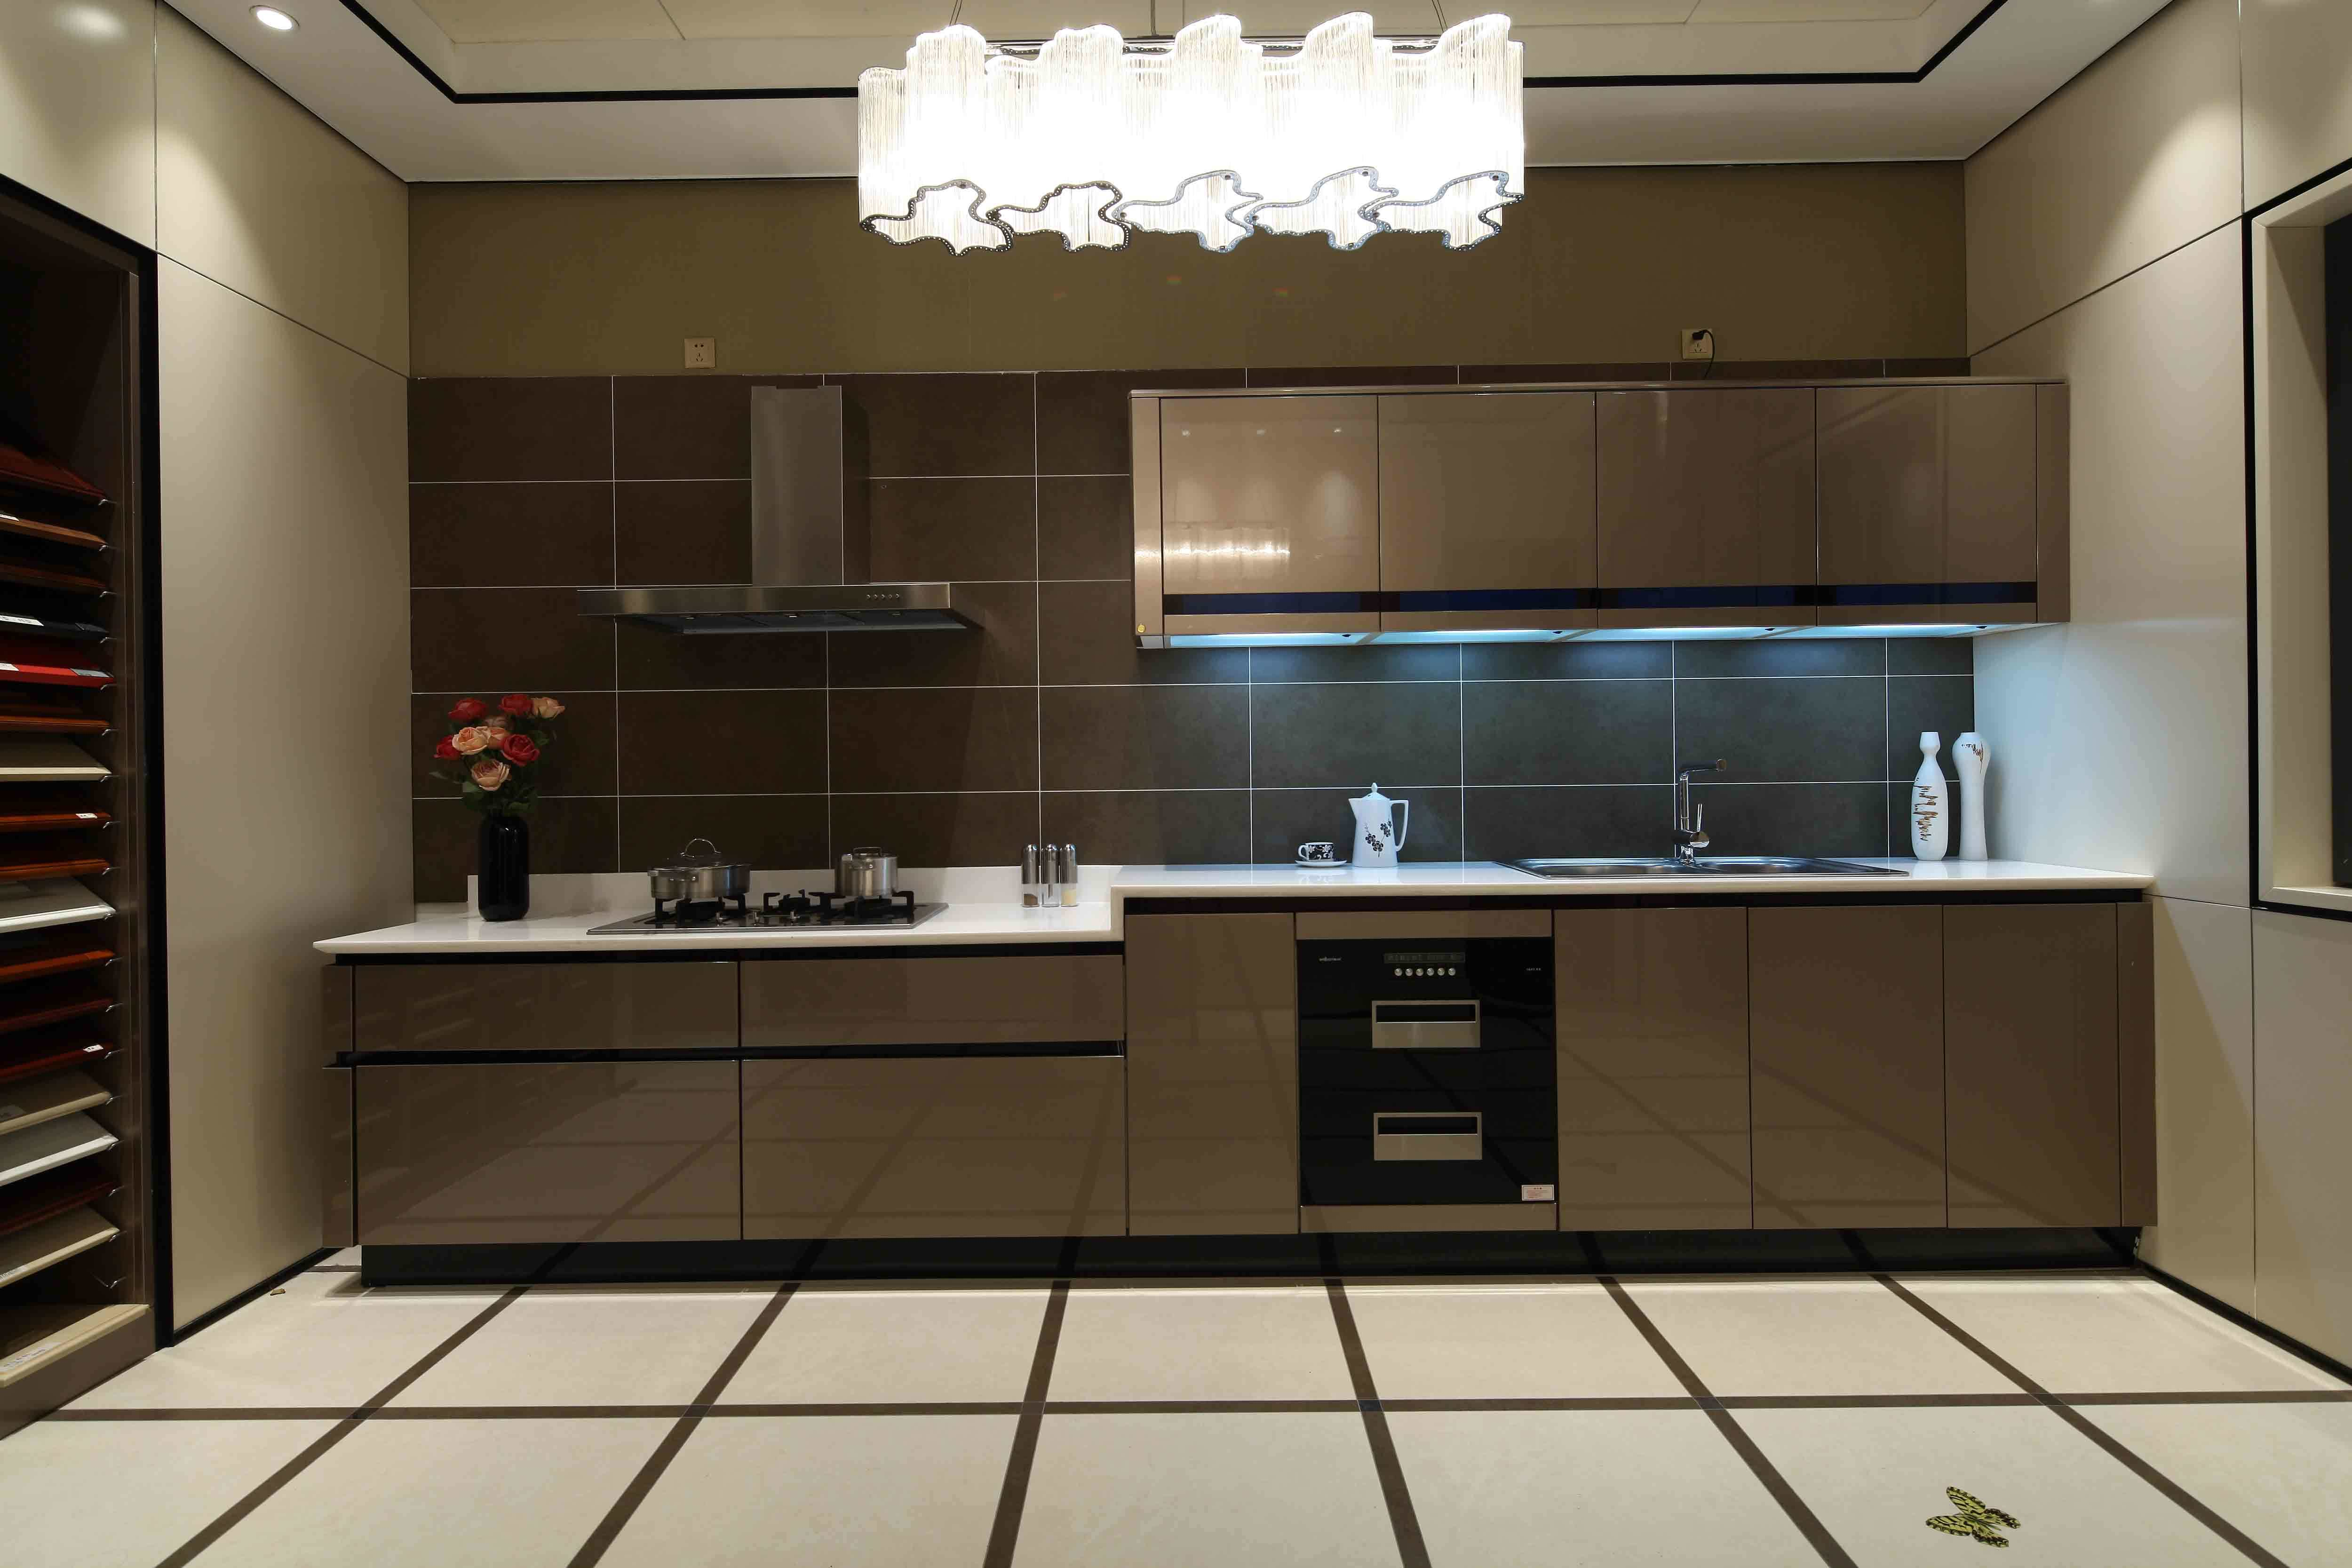 Lacquered Kitchen Cabinets - Lacquered kitchen cabinets